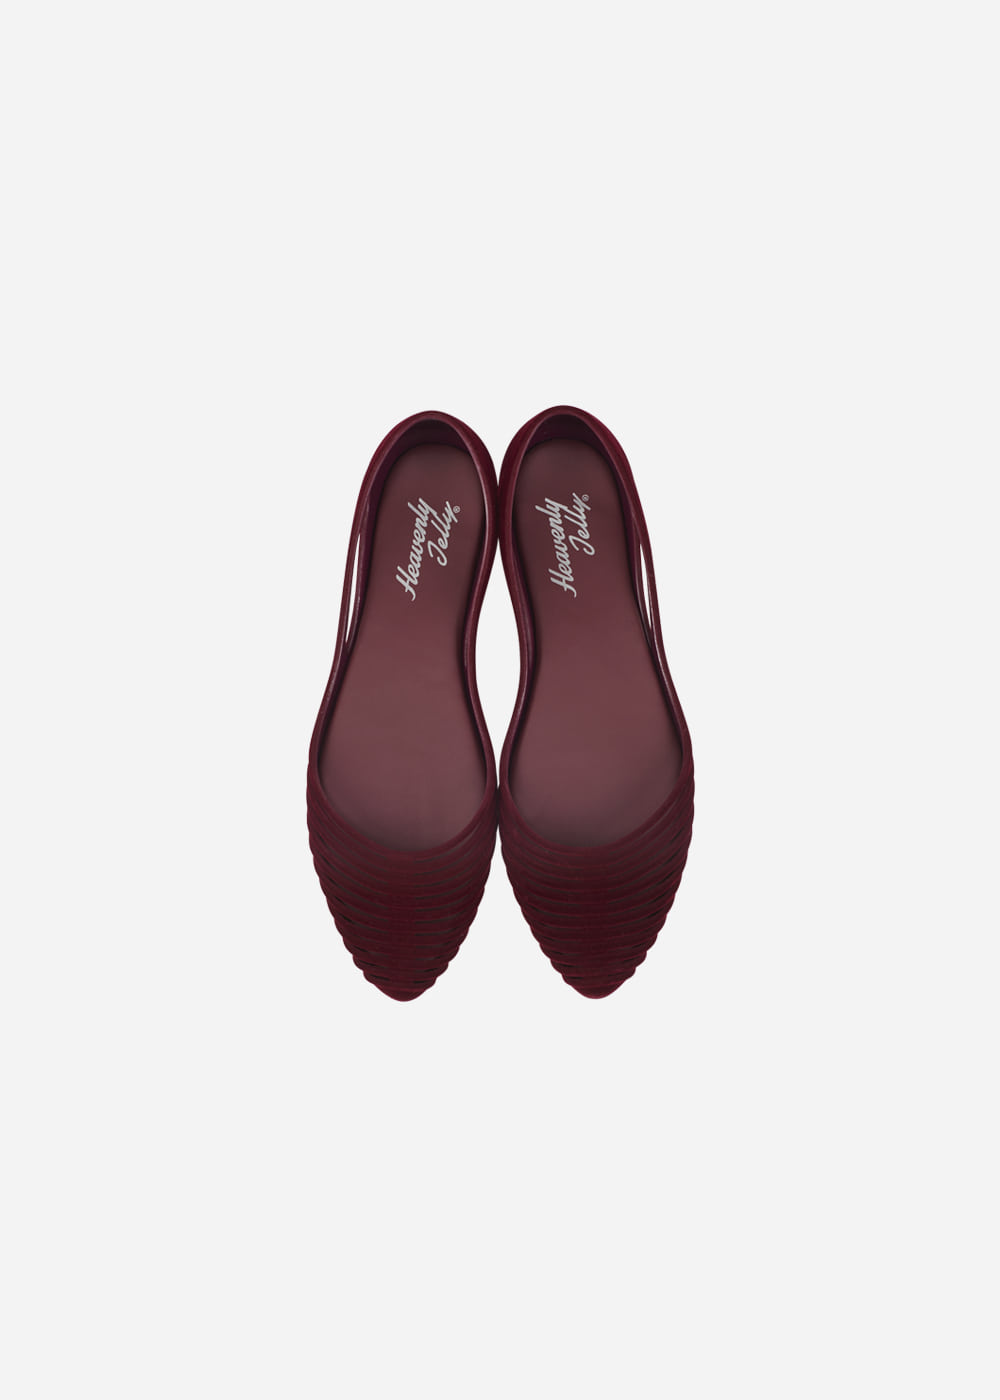 GRACE SUEDE BURGUNDY